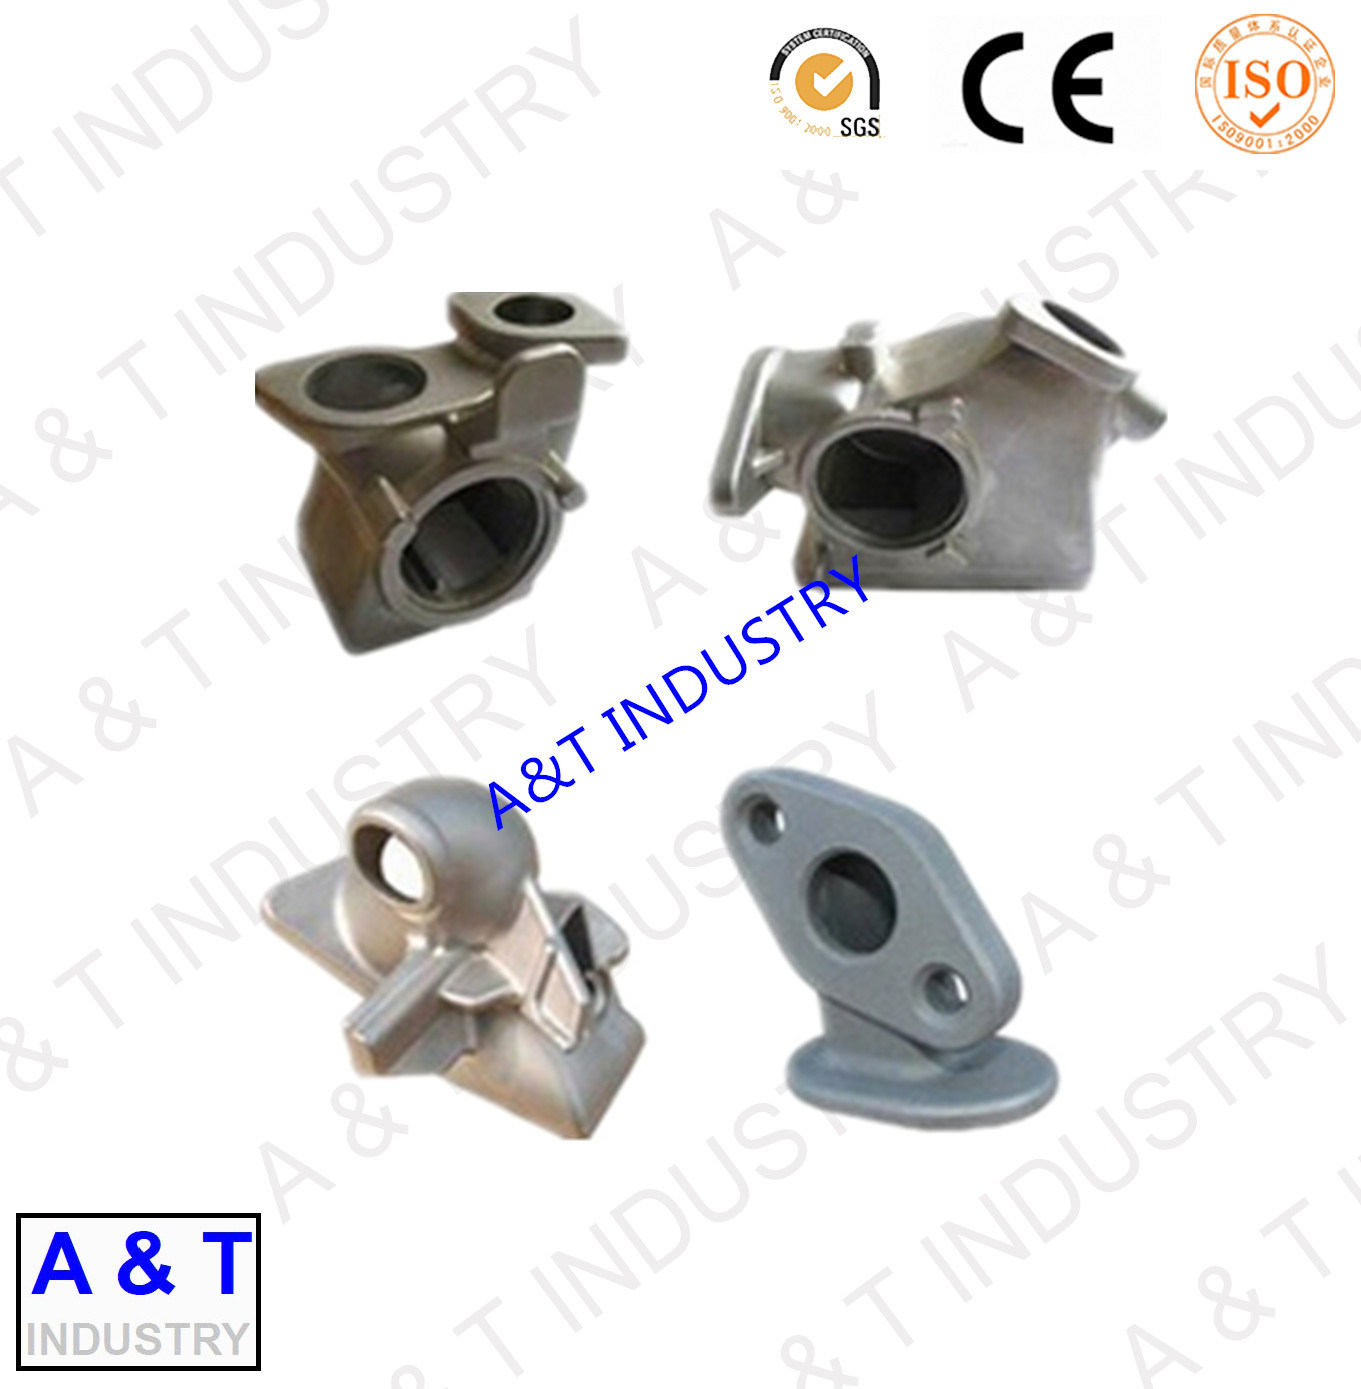 ISO 9001 Certificated Customized Pressure Die Casting